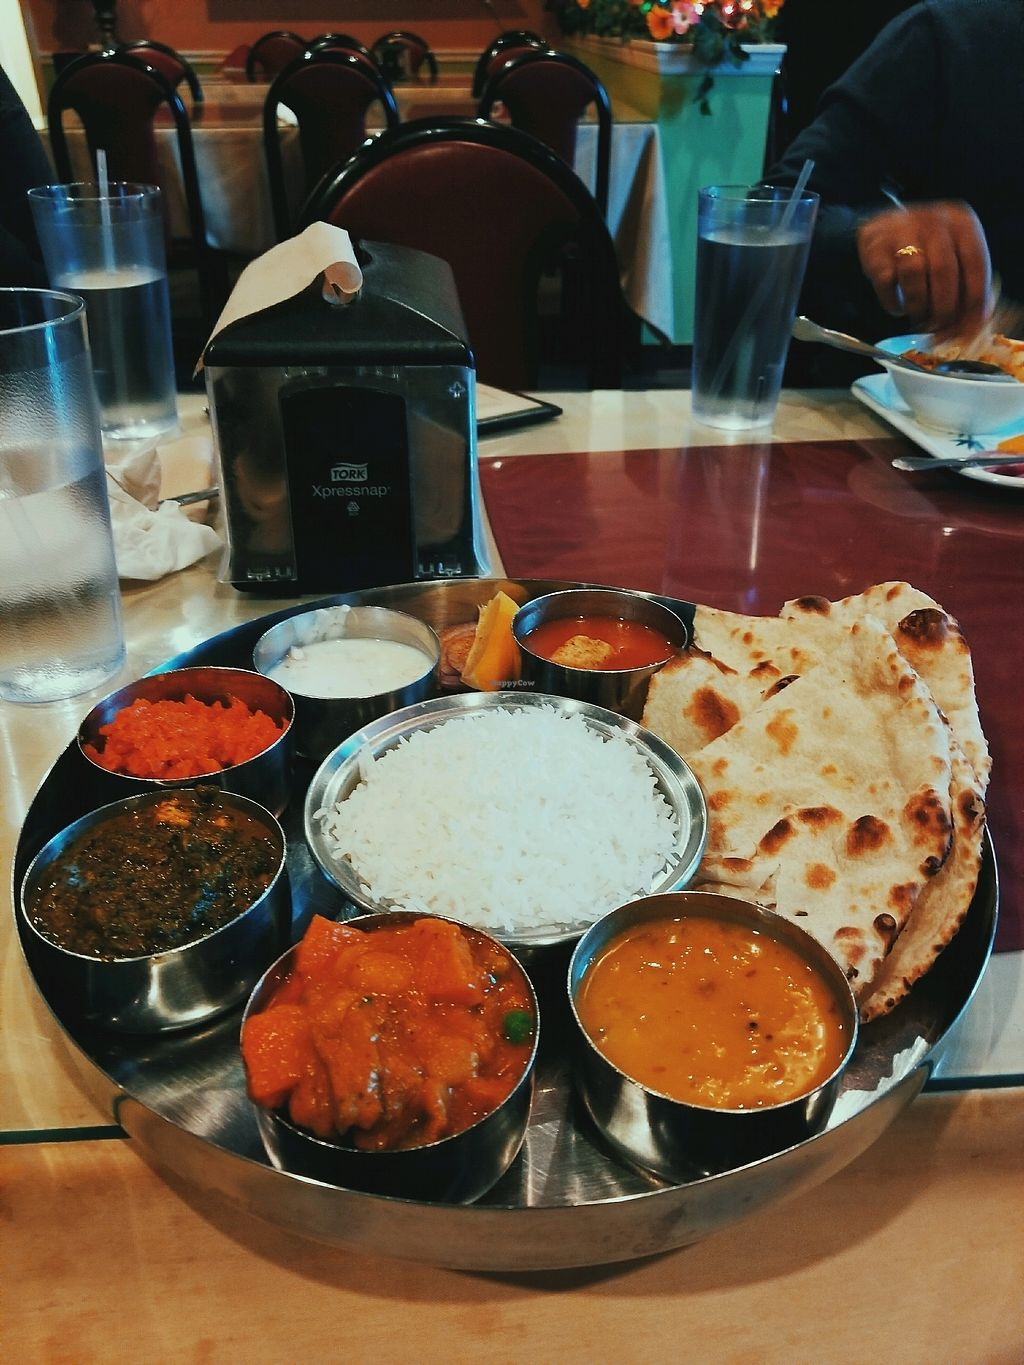 """Photo of Woodlands  by <a href=""""/members/profile/claybanks1989"""">claybanks1989</a> <br/>forget the name of this dish but everything was delicious! <br/> January 11, 2018  - <a href='/contact/abuse/image/4222/345241'>Report</a>"""